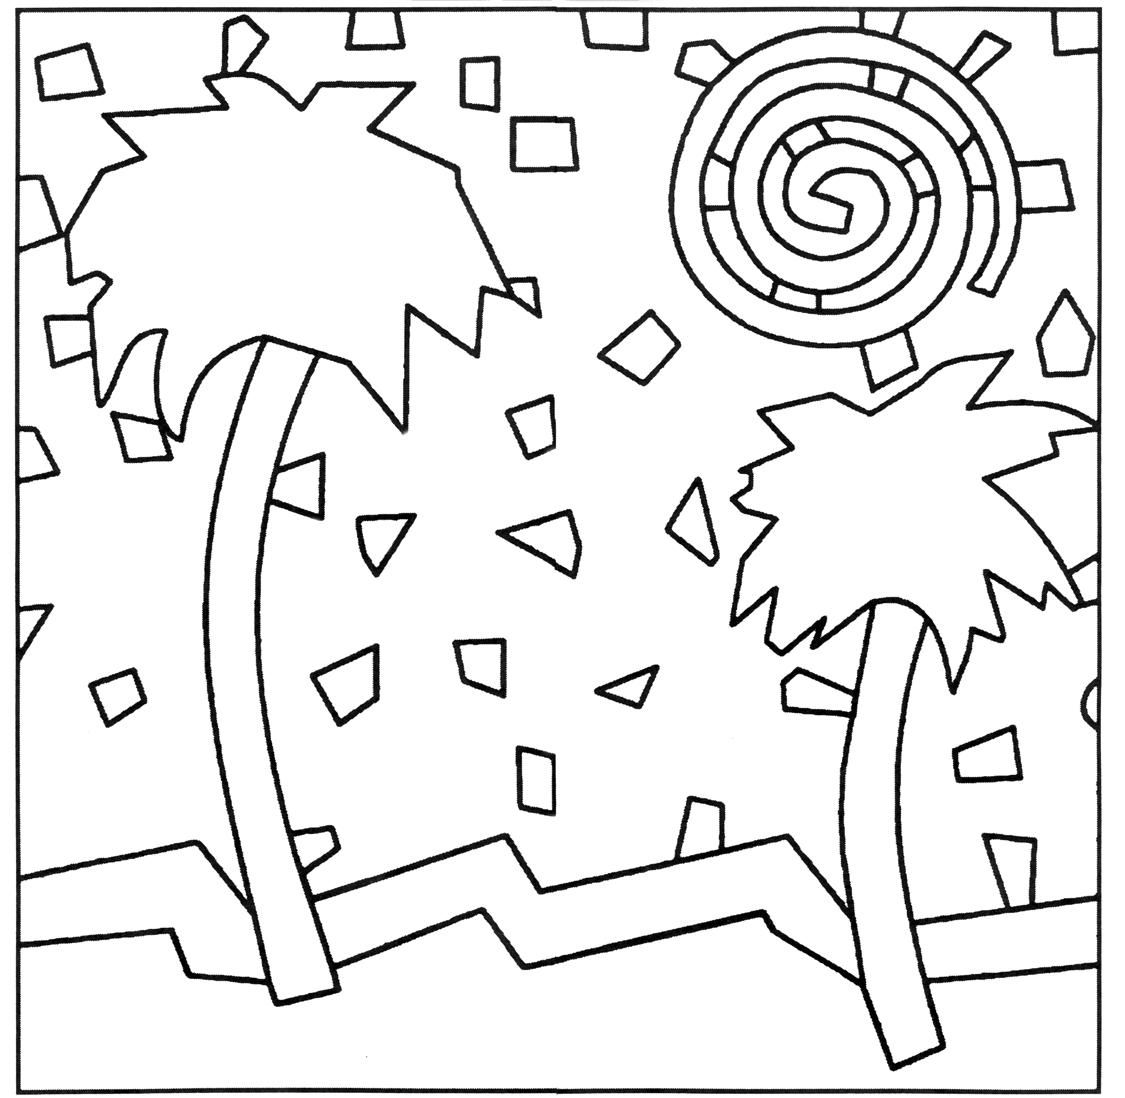 Animal Mosaic Colouring Pages : Mosaic coloring pages of animals home